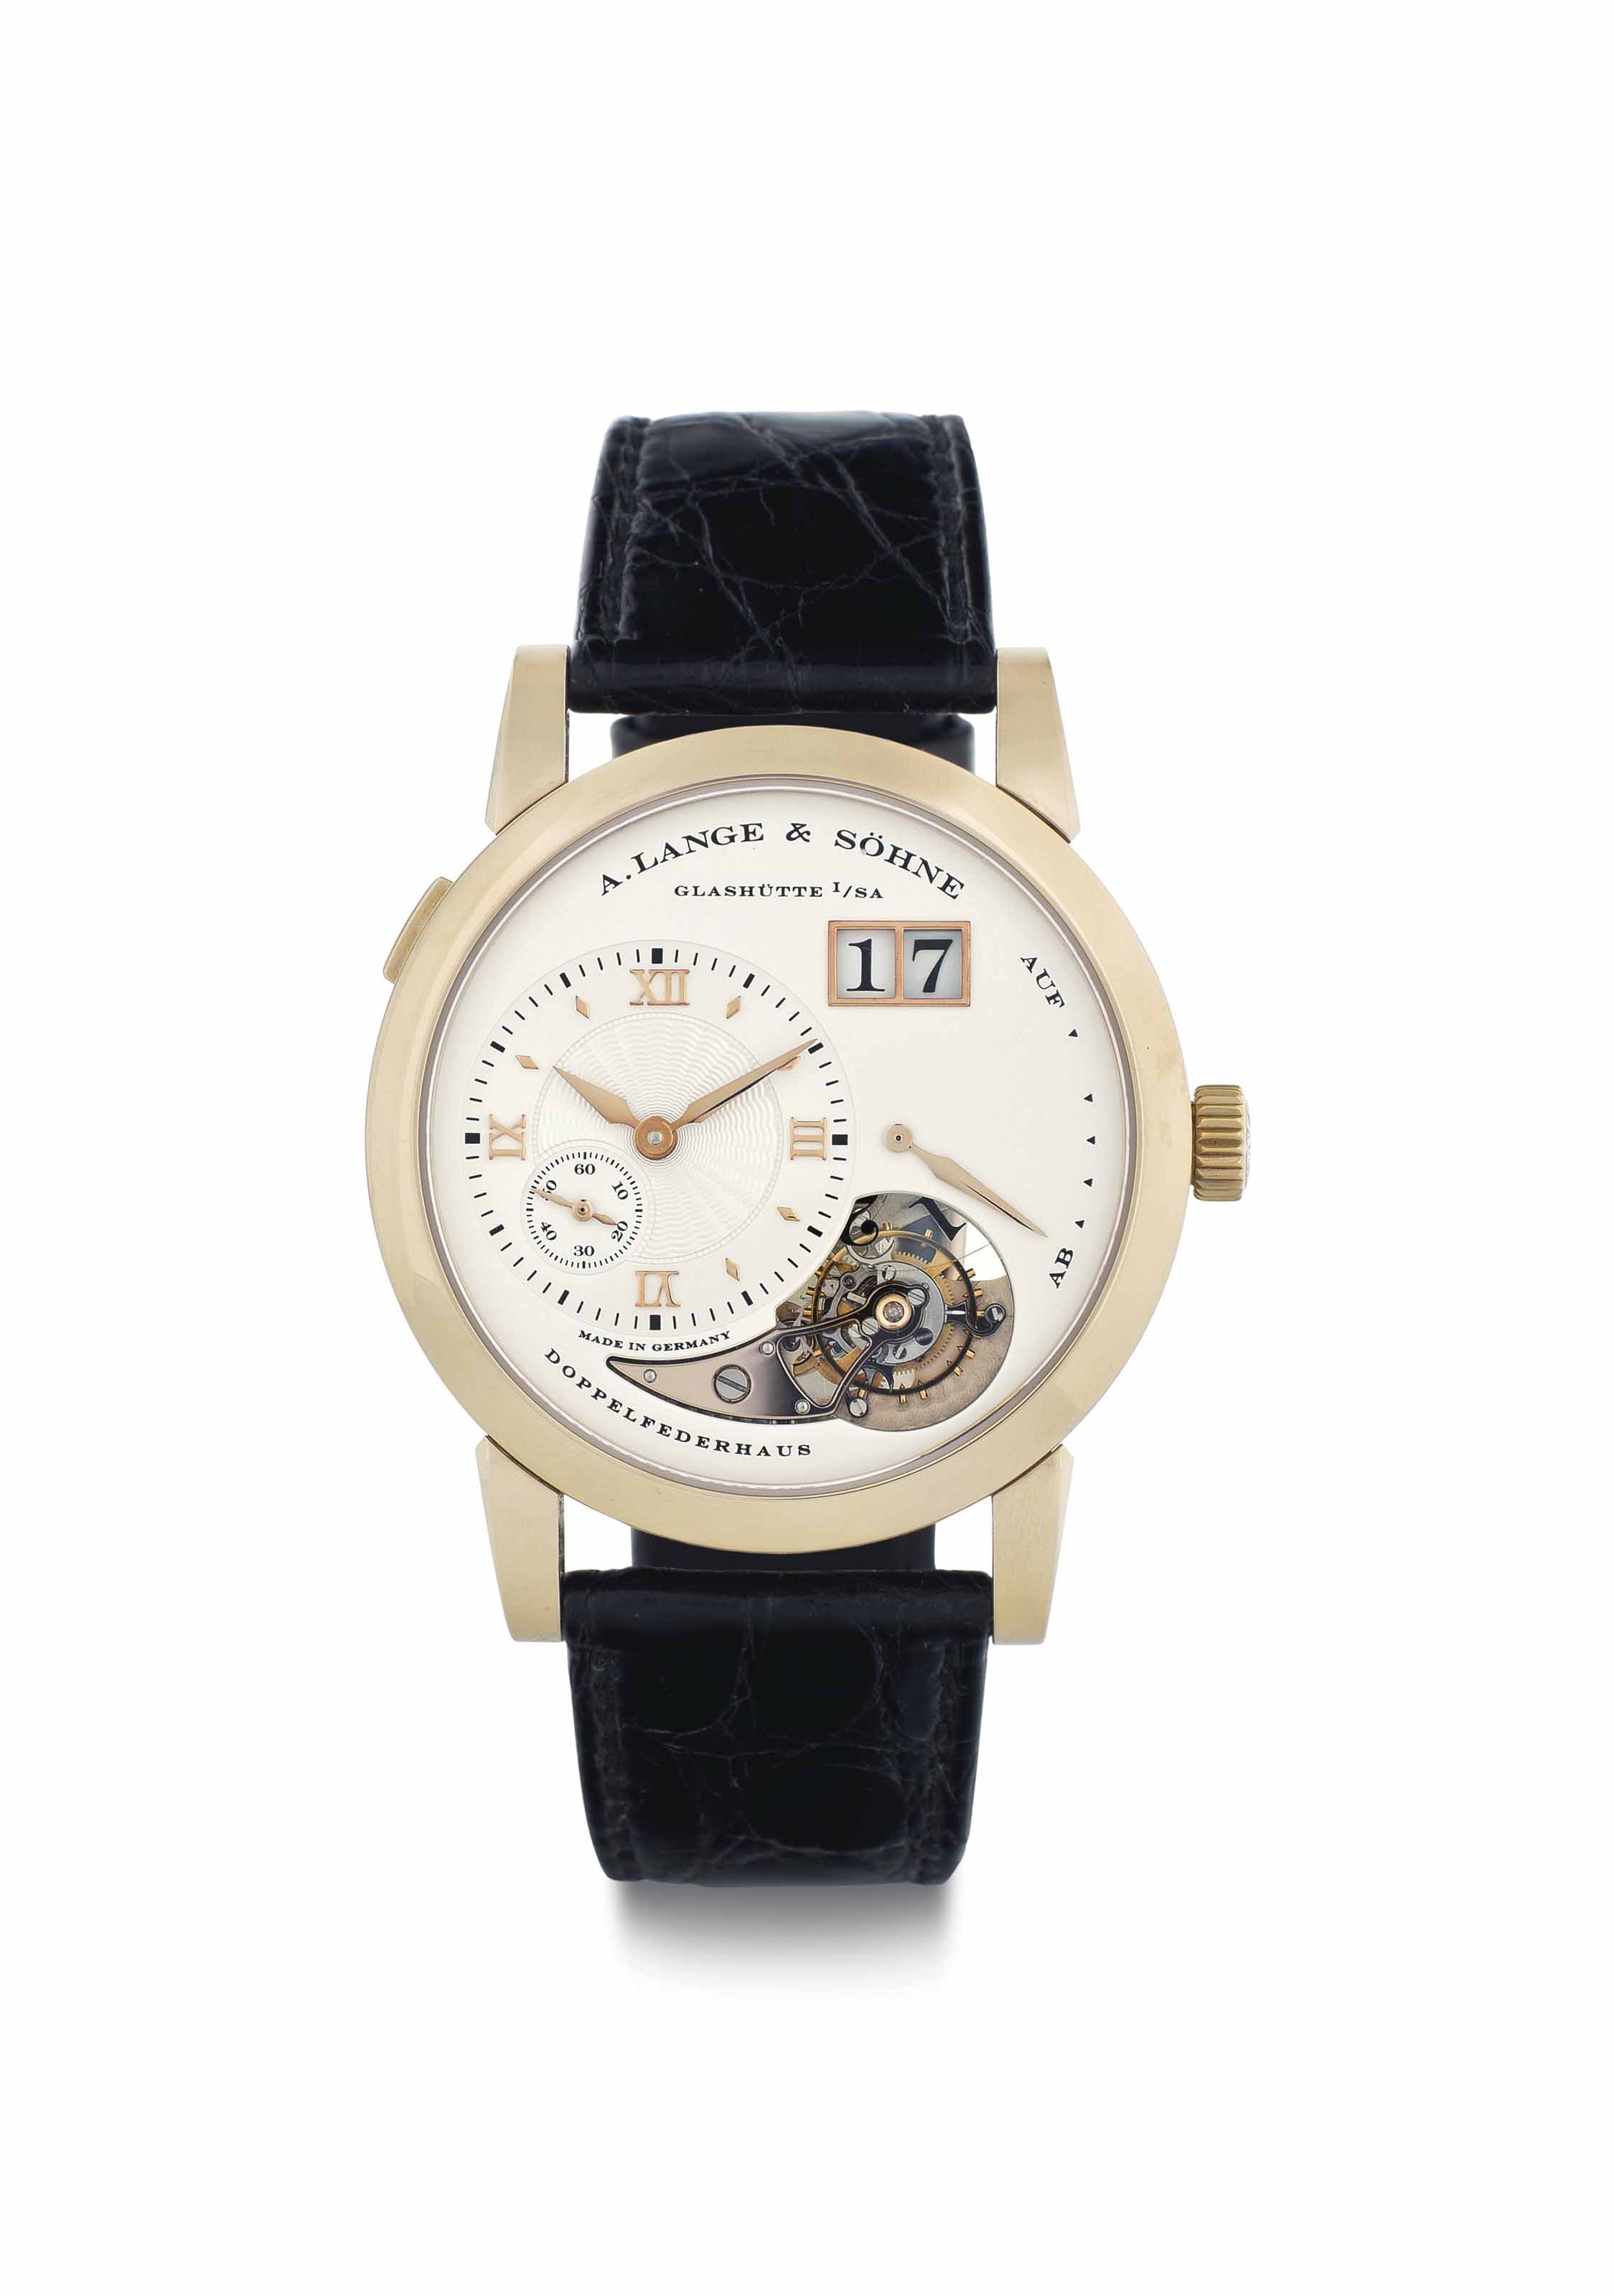 A. Lange & Söhne. A Very Fine and Rare 18k Honey-Colored Gold Limited Edition Tourbillon Wristwatch with Power Reserve, Date, and Hack Feature